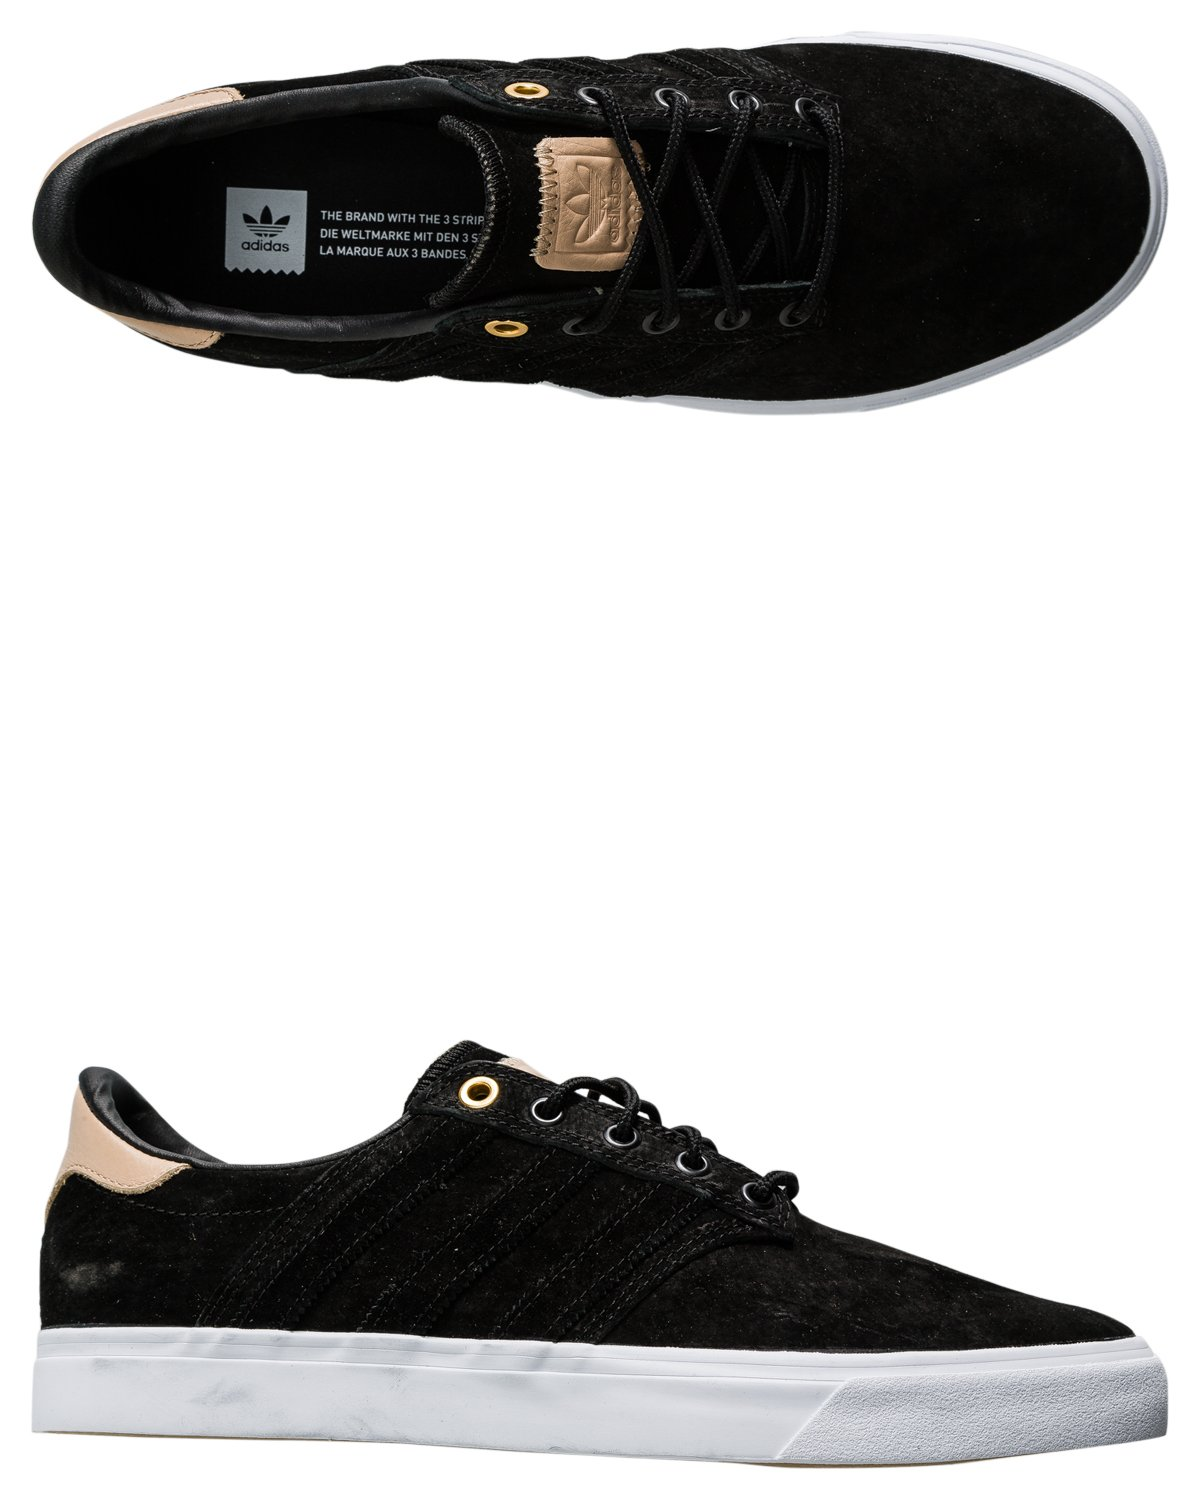 adidas Originals Men\'s Seeley Premiere Classified Fashion Sneaker Core Black/Pale Nude/Footwear White